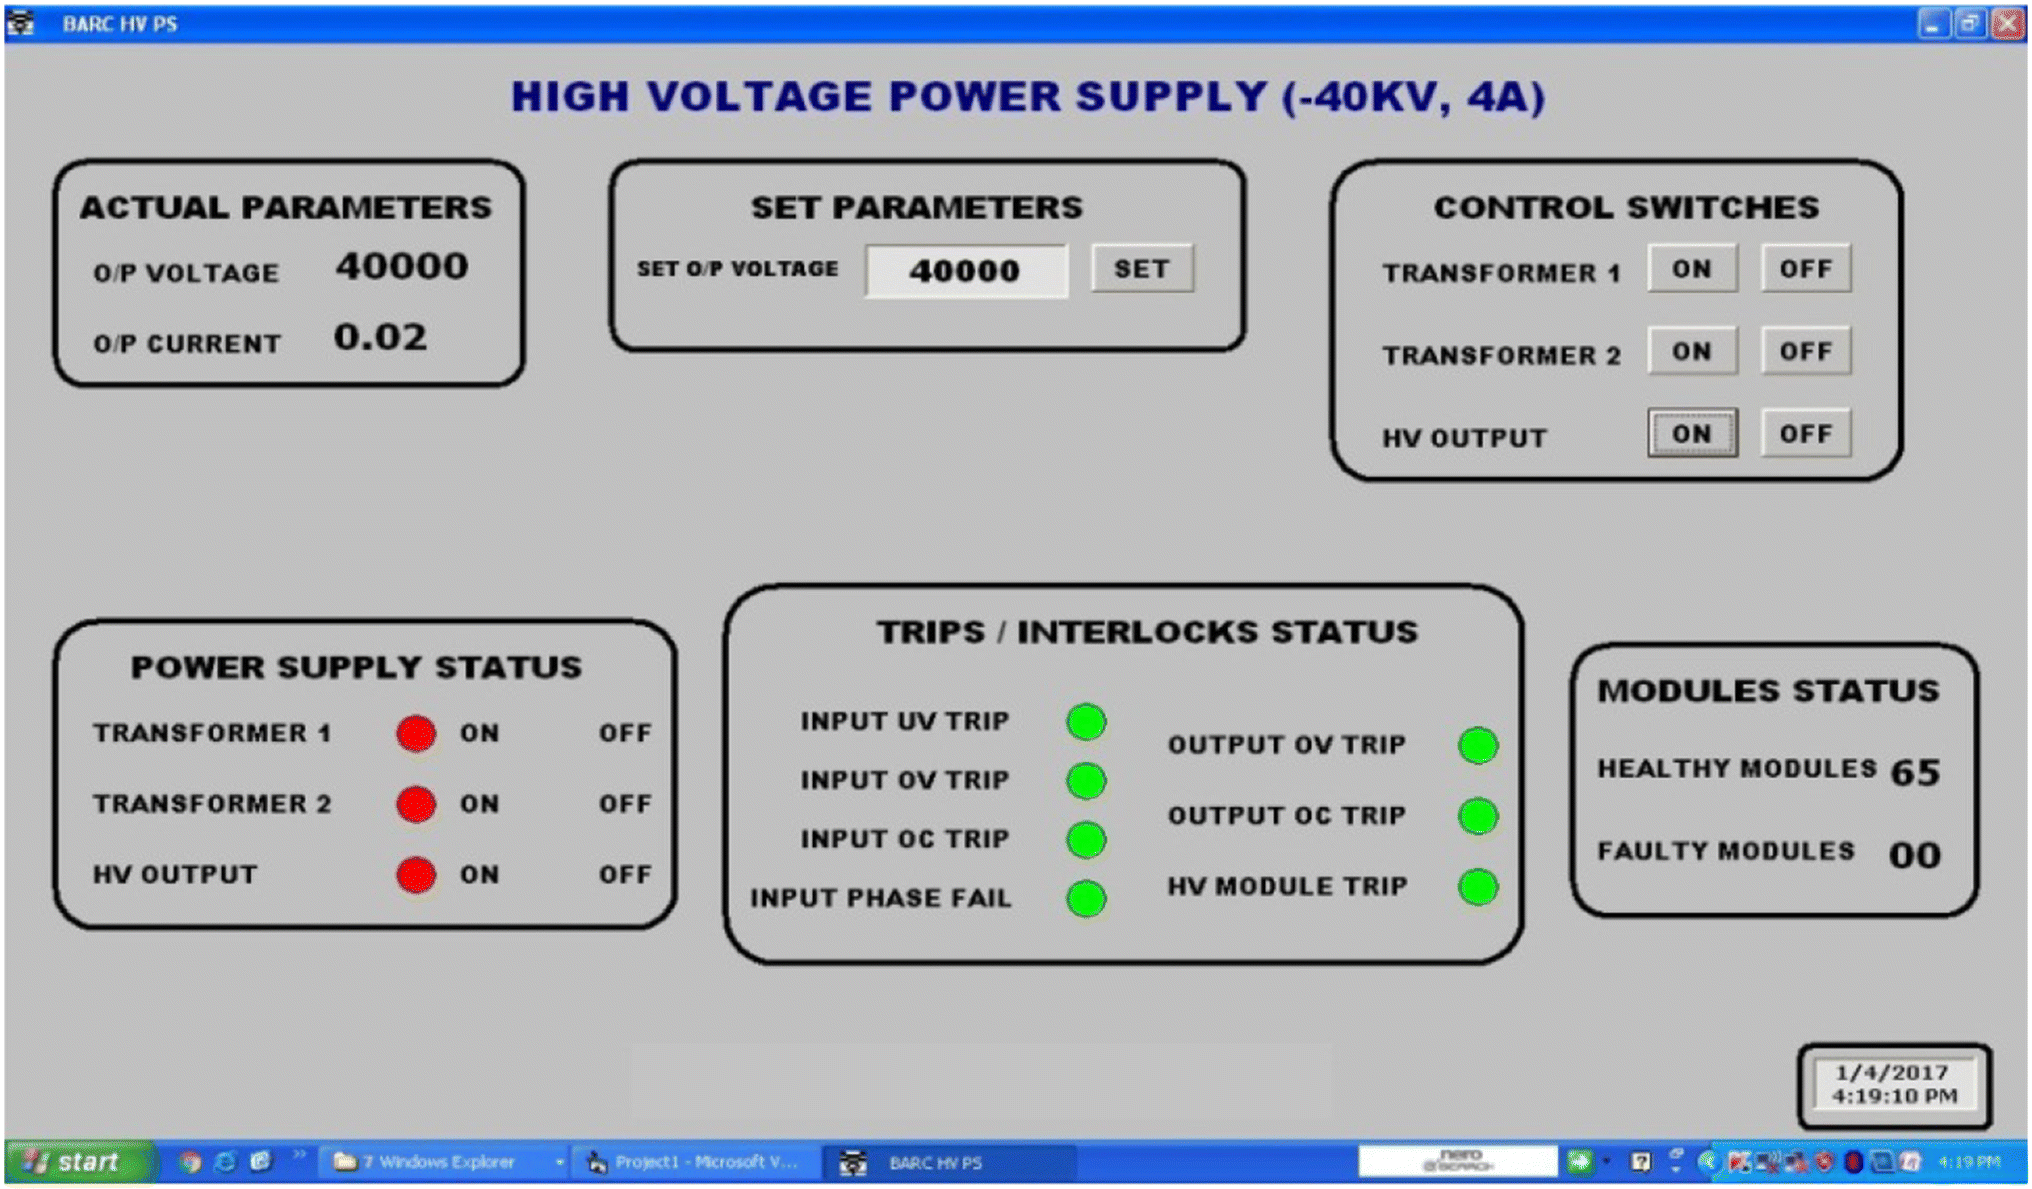 Design And Performance Analysis Of A Crowbar Less High Voltage Power Home Variac Wiring Diagrampng Open Image In New Window